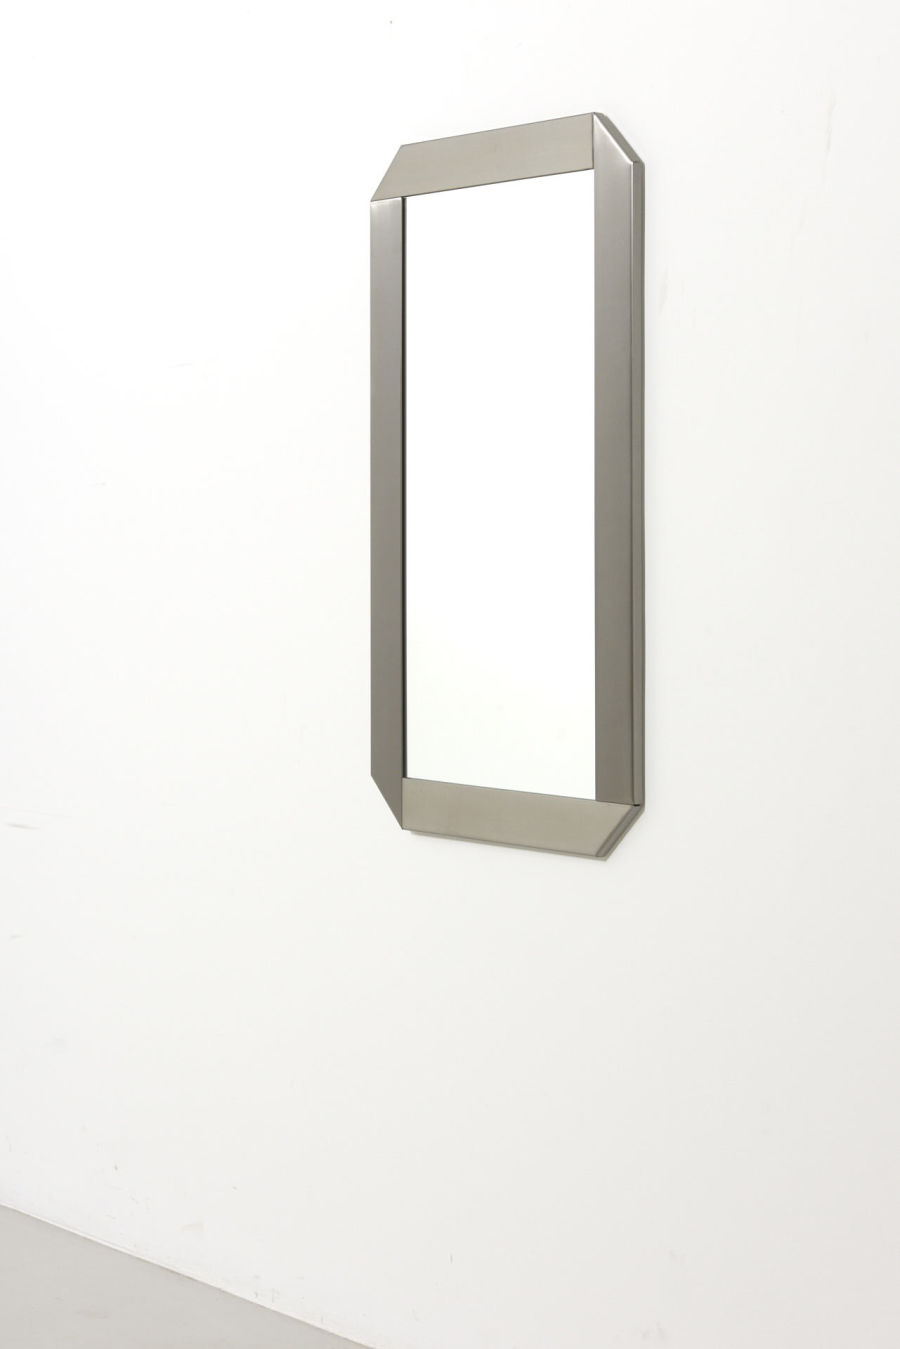 modestfurniture-vintage-2402-mirror-stainless-steel01